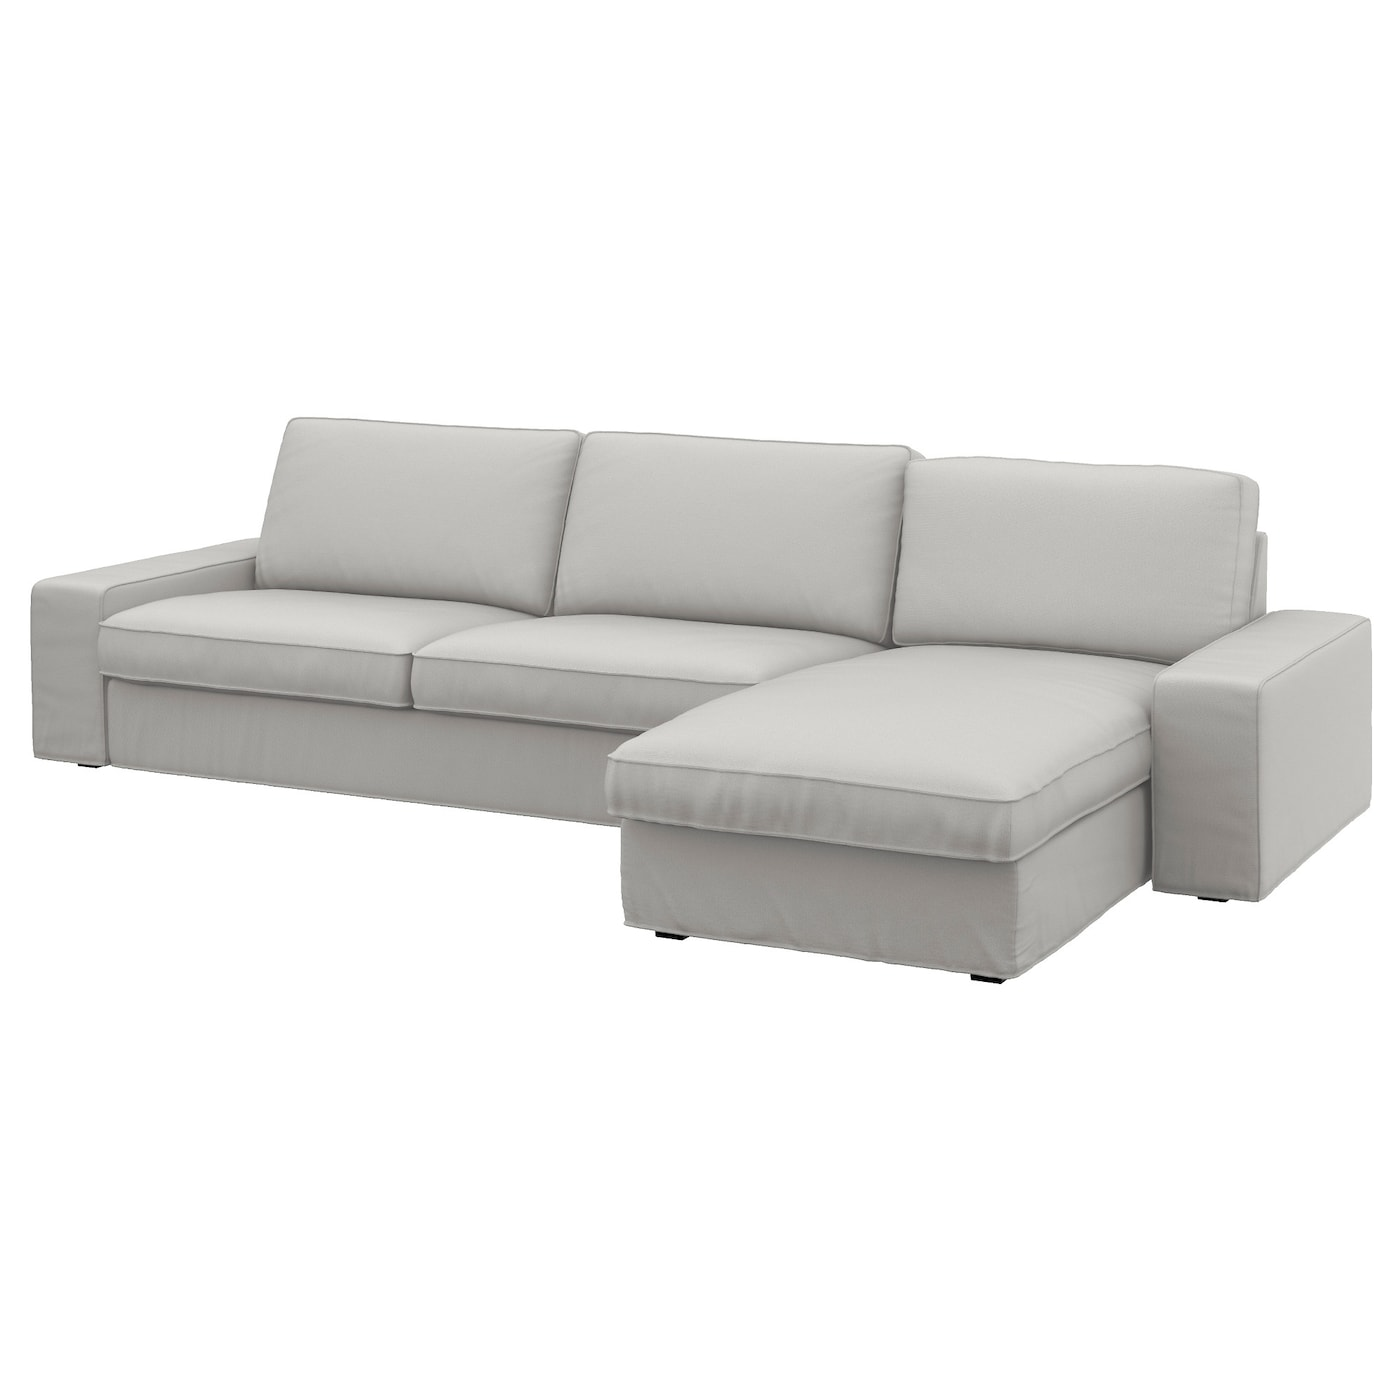 Kivik 4 Seat Sofa With Chaise Longue Ramna Light Grey Ikea